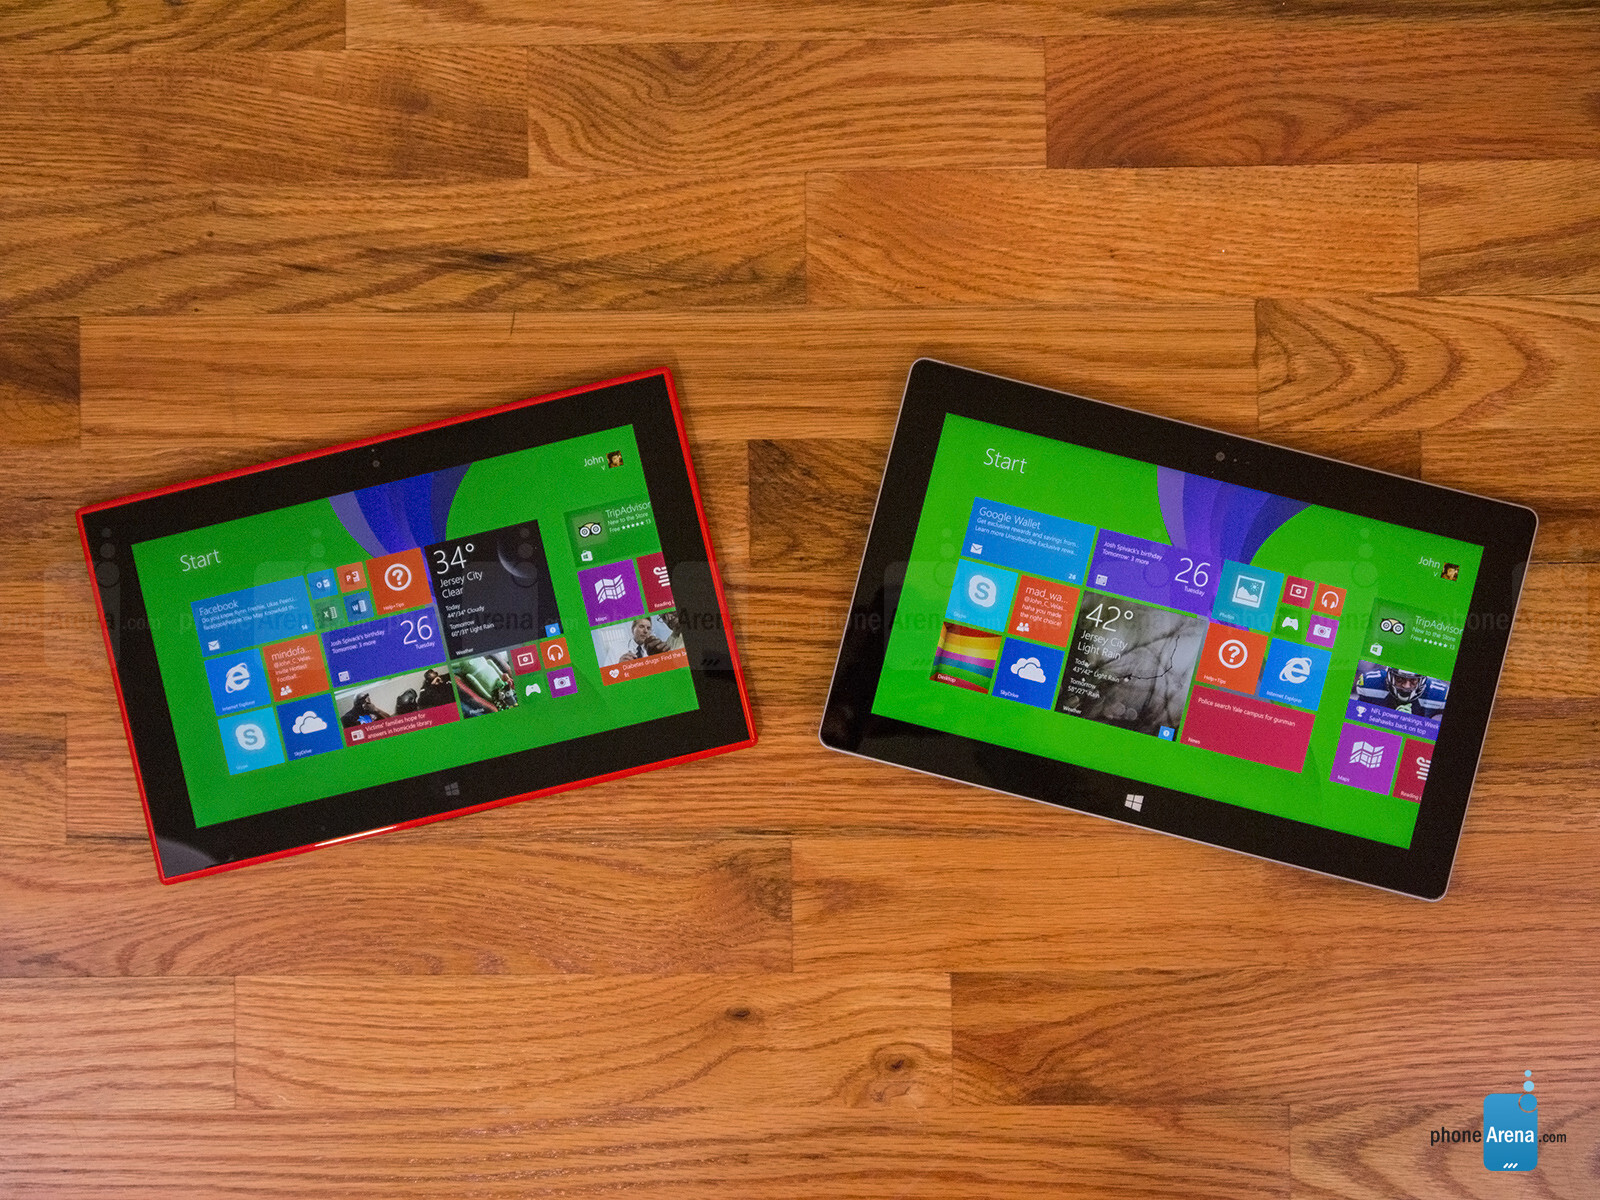 Nokia + Microsoft = chaos: why MS needs to rethink this 2